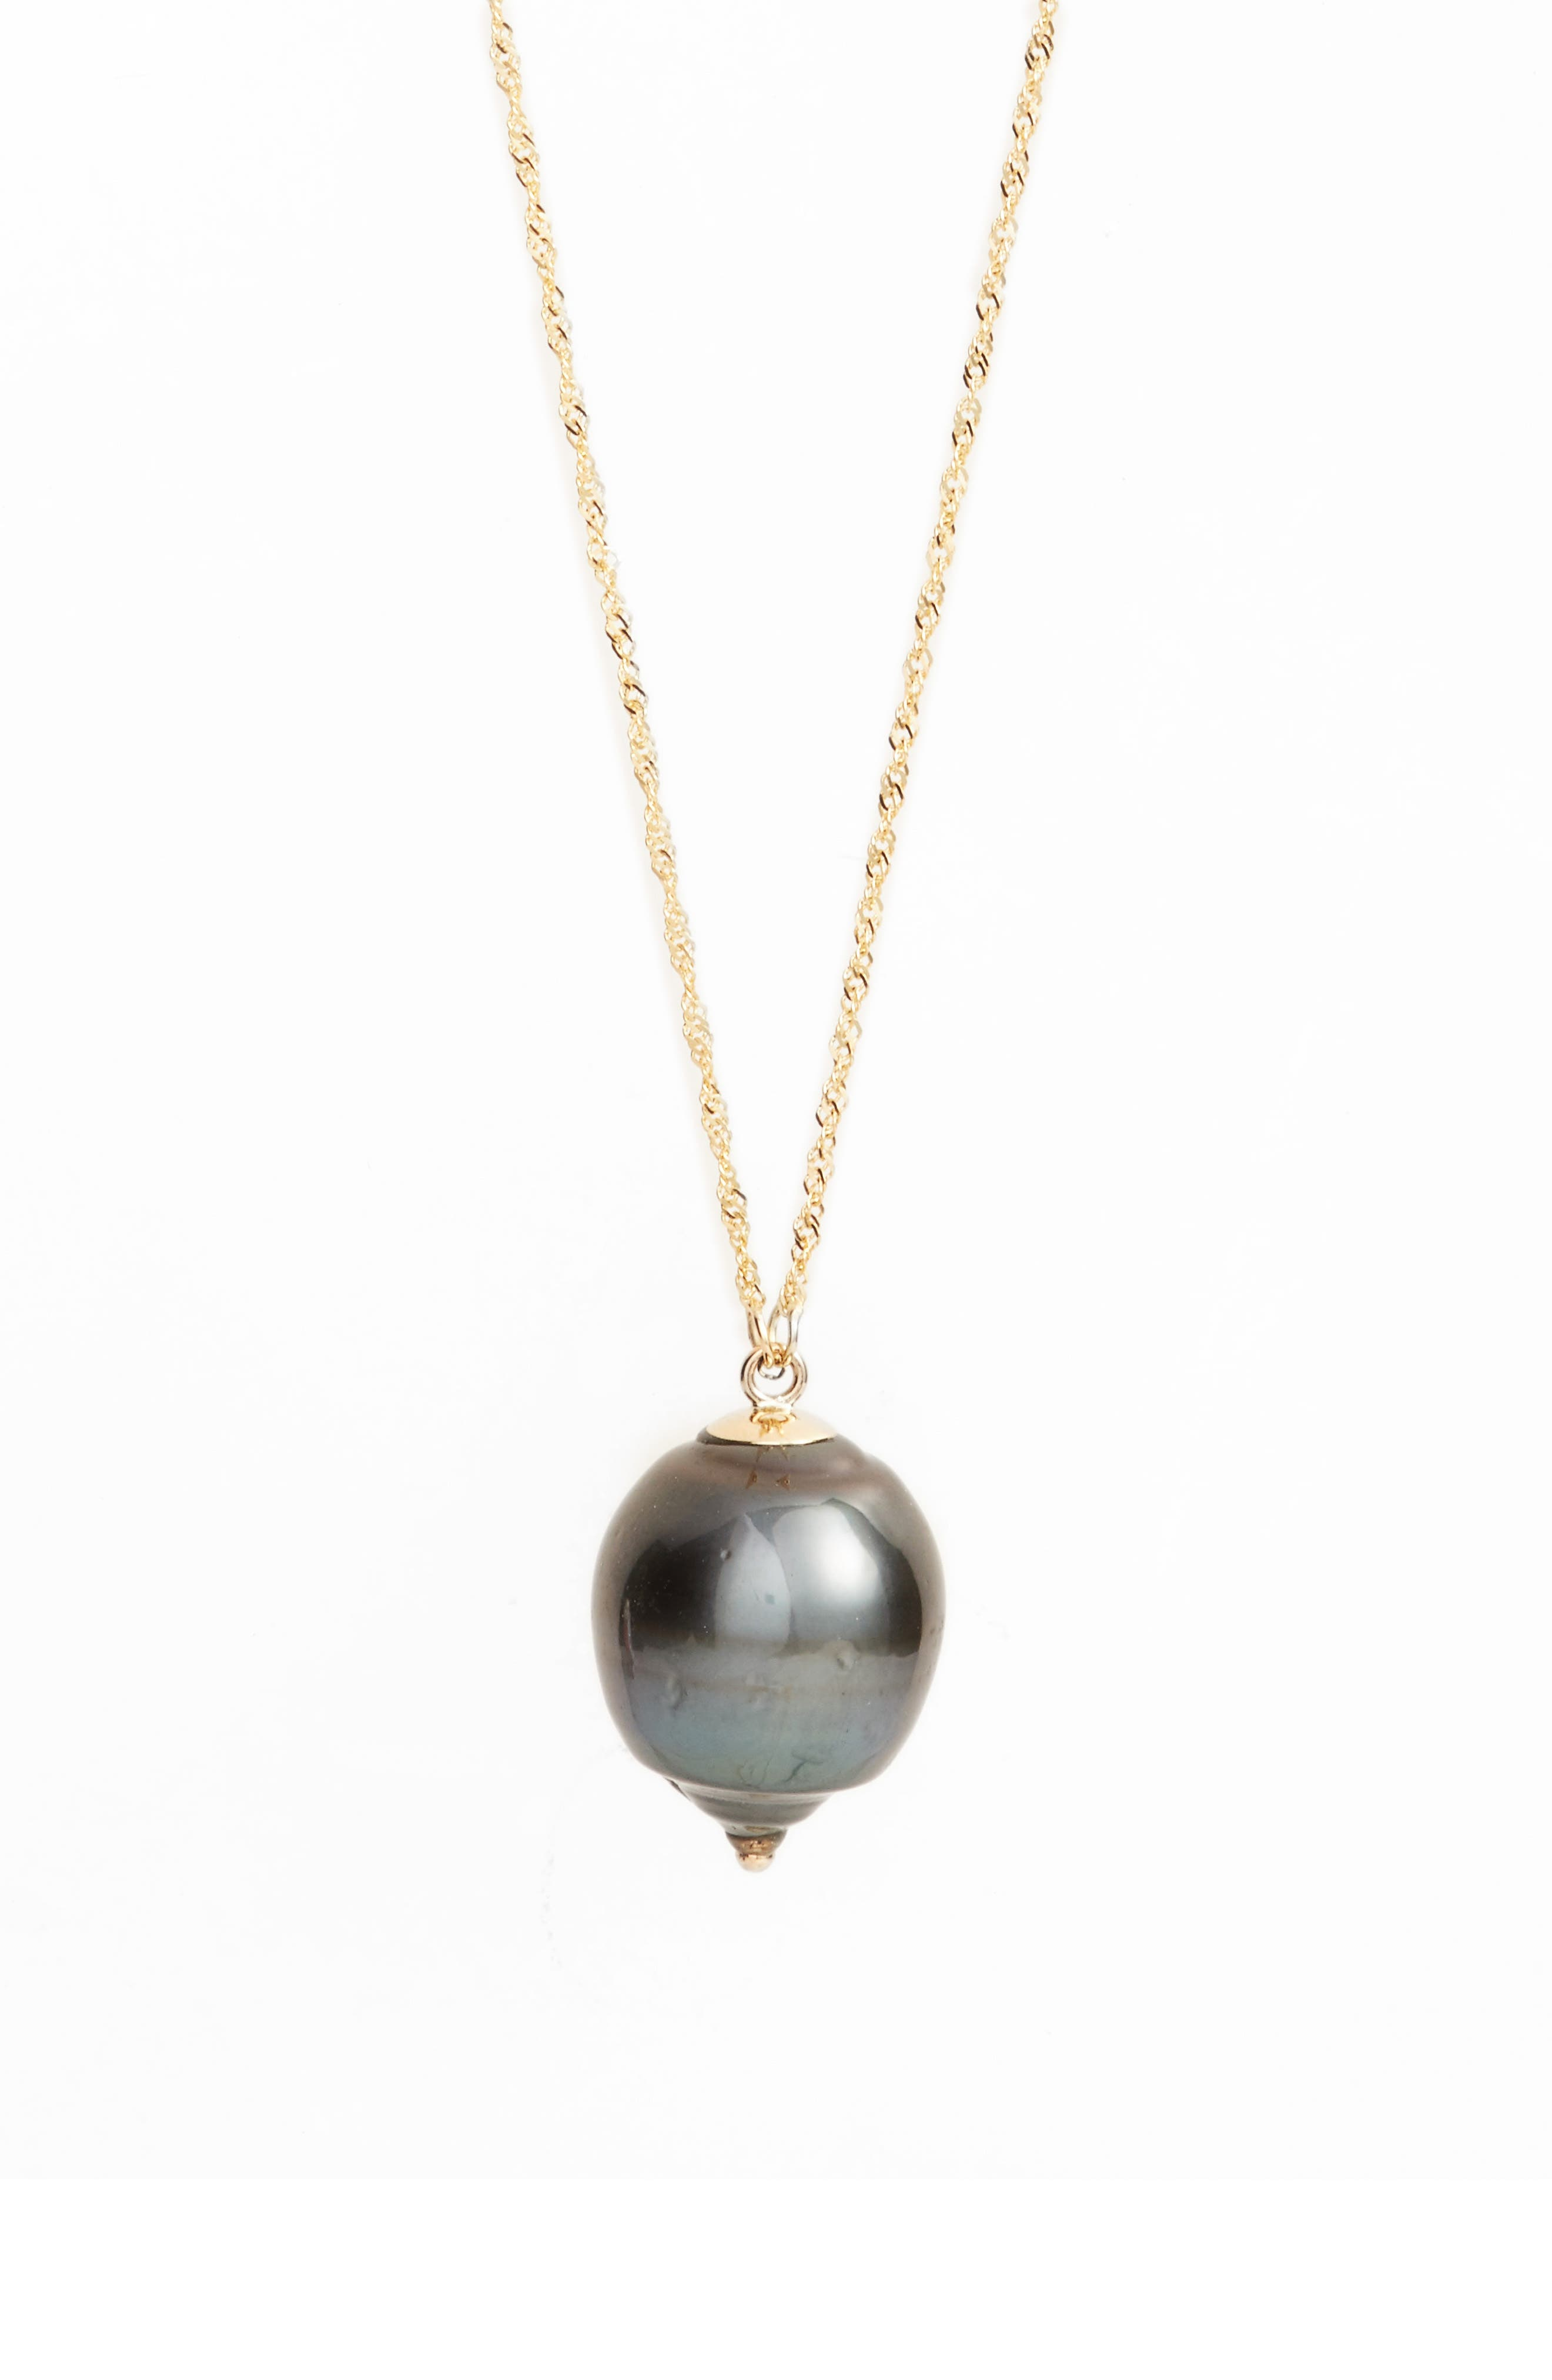 Long Pearl Pendant Necklace,                             Main thumbnail 1, color,                             Yellow Gold/ Black Pearl